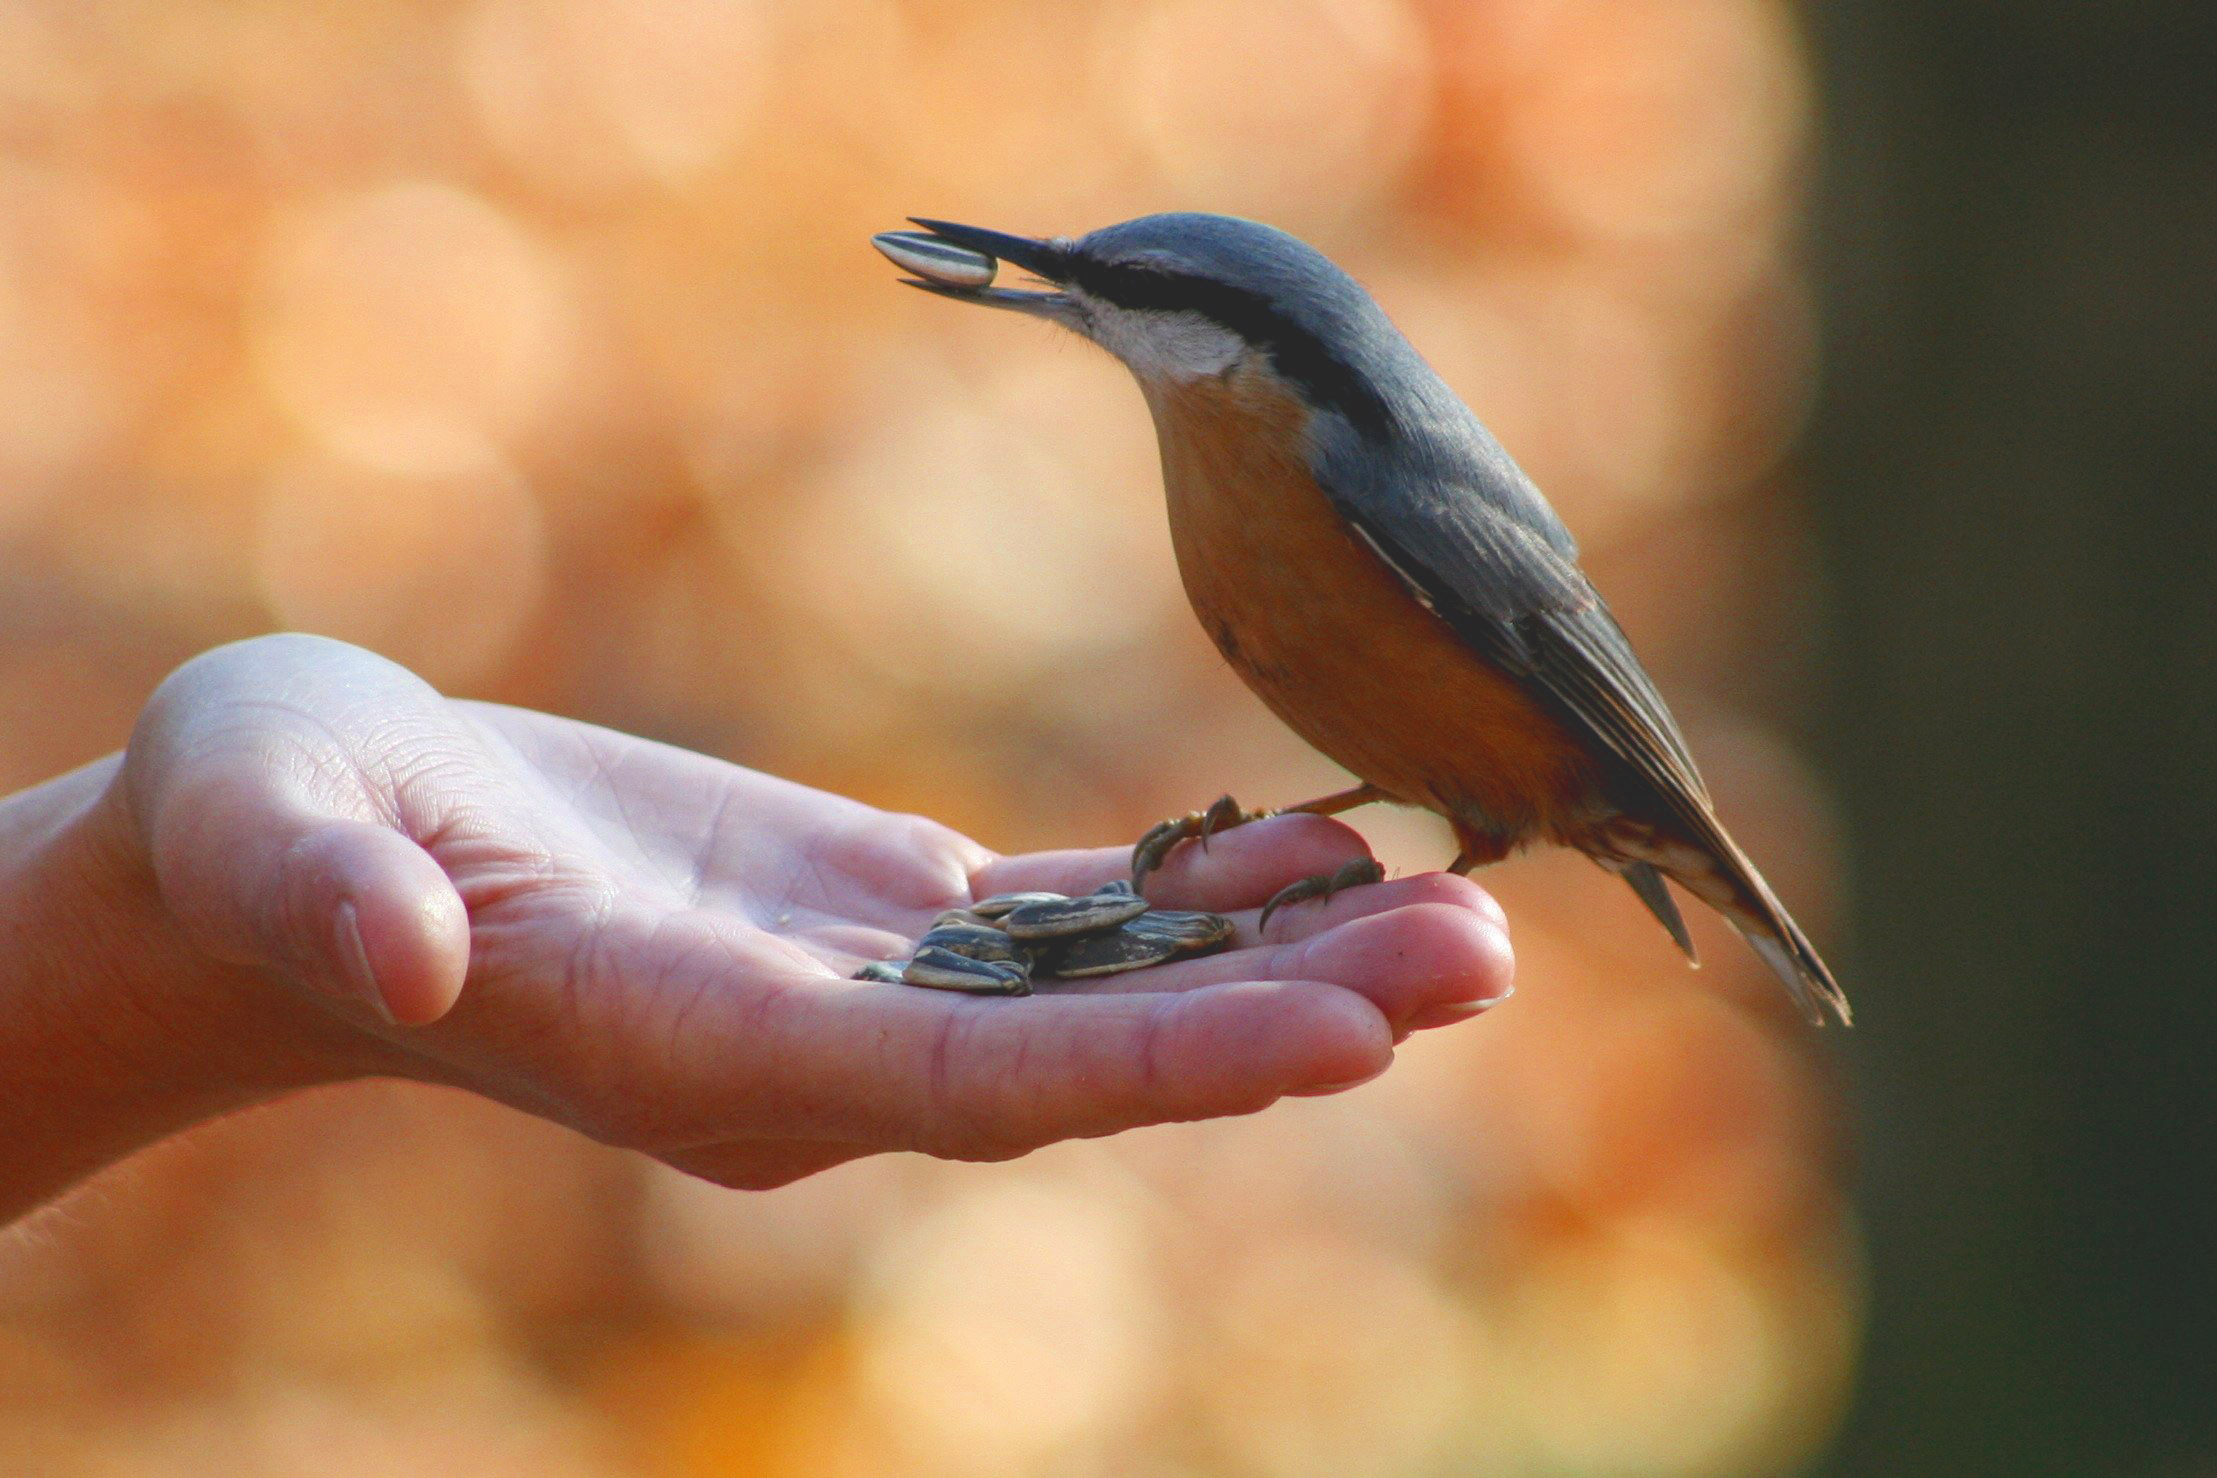 A wood nuthatch sitting in someone's hand eating sunflower seeds